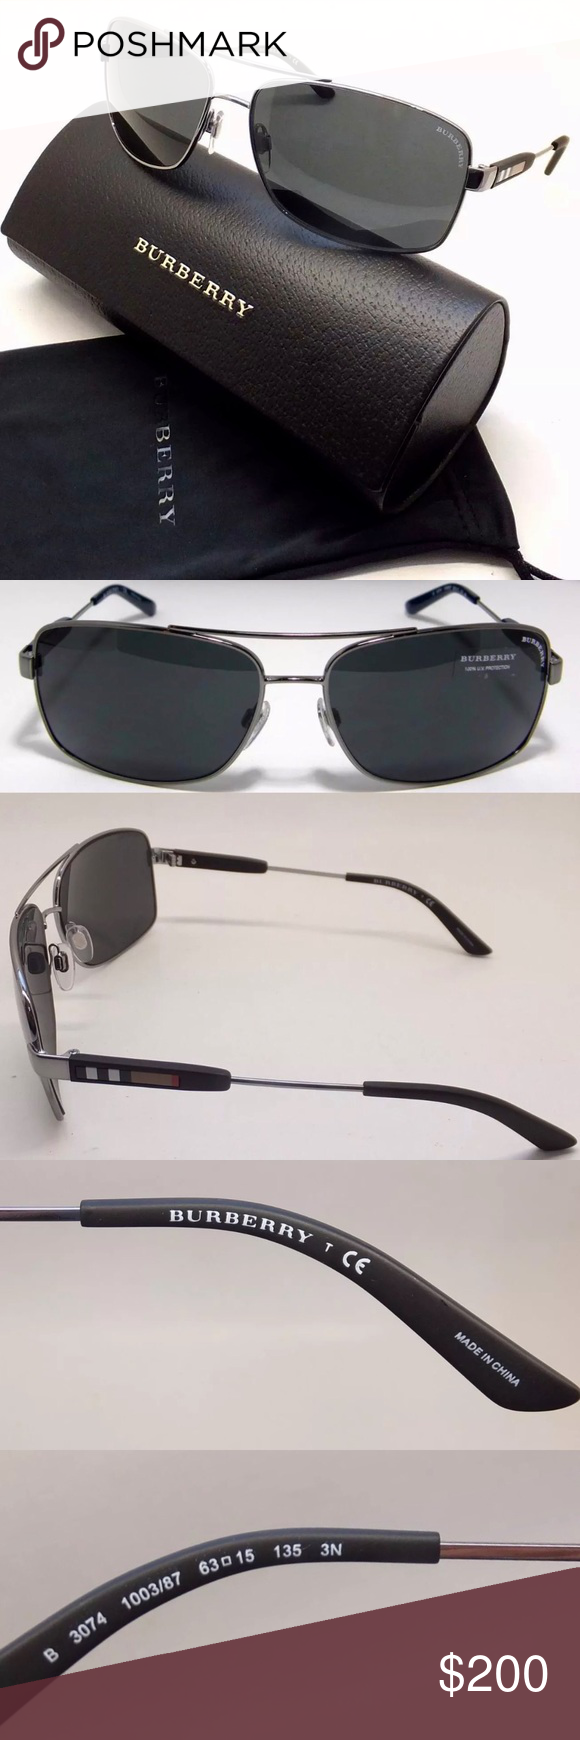 92c7c39f3349 NWT Burberry Mens Gunmetal Grey Aviator Sunglasses 100% Authentic New with  Tags 2 year manufacturers